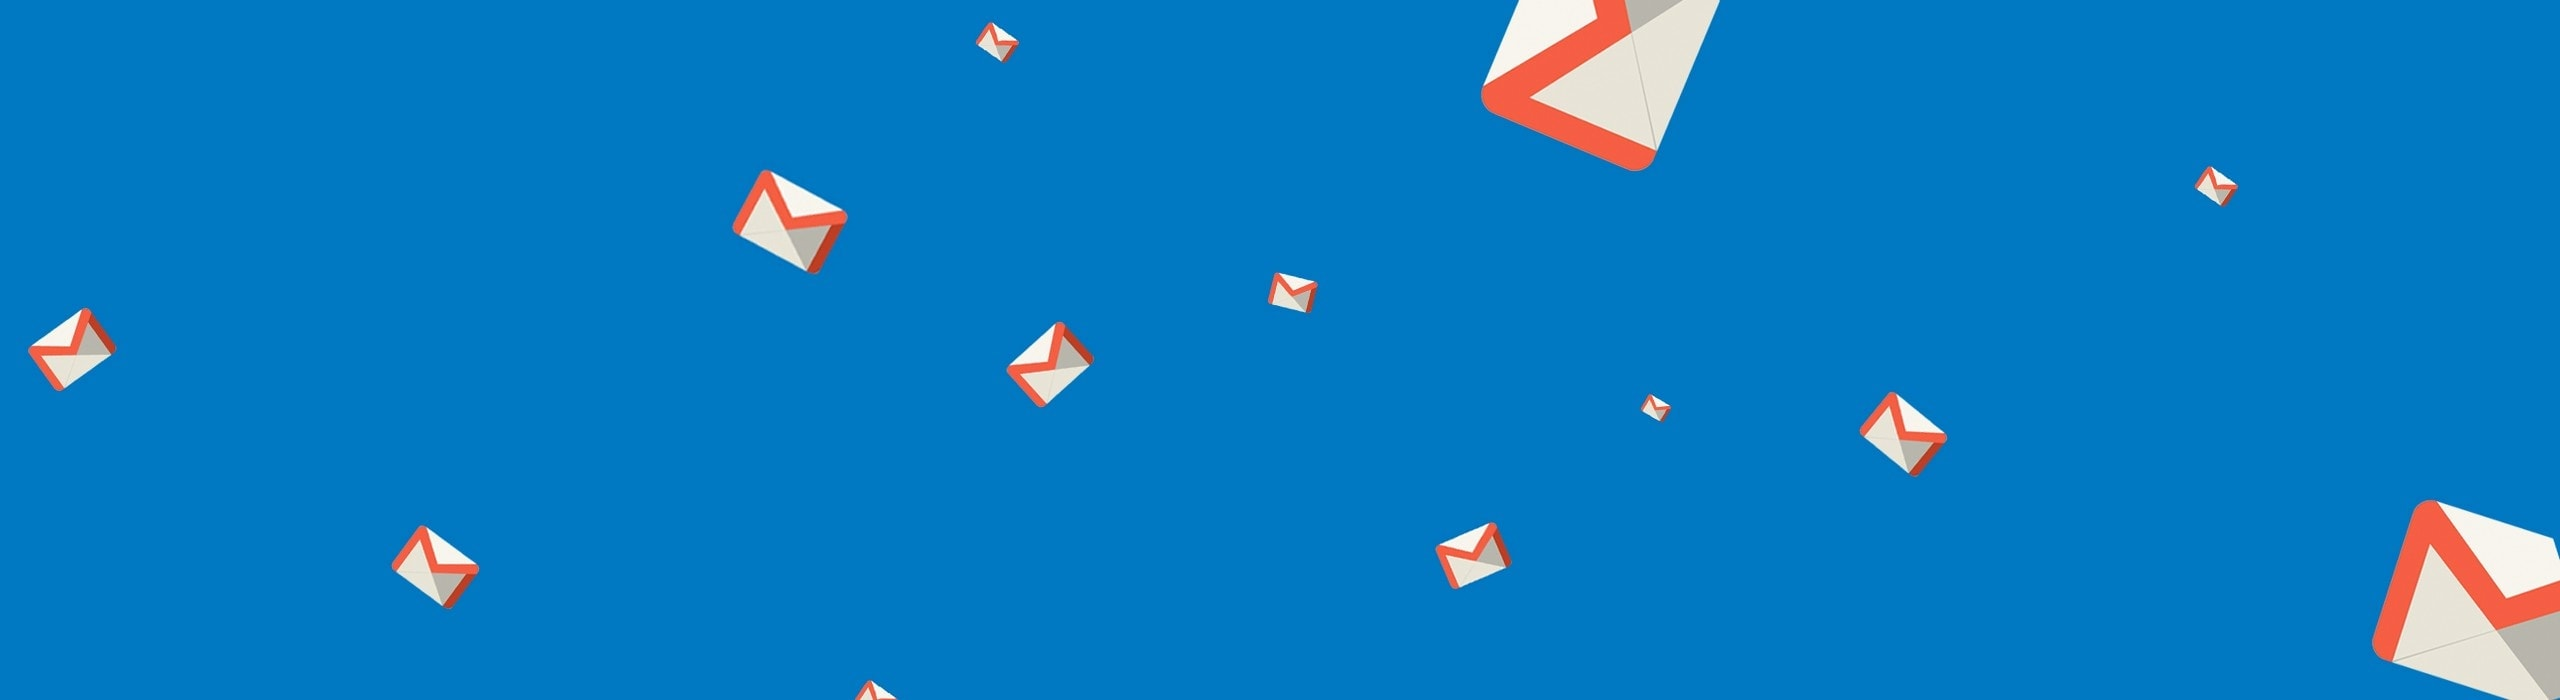 Gmail Africa - natie-gmail-africa-2011 - Natie Branding Agency